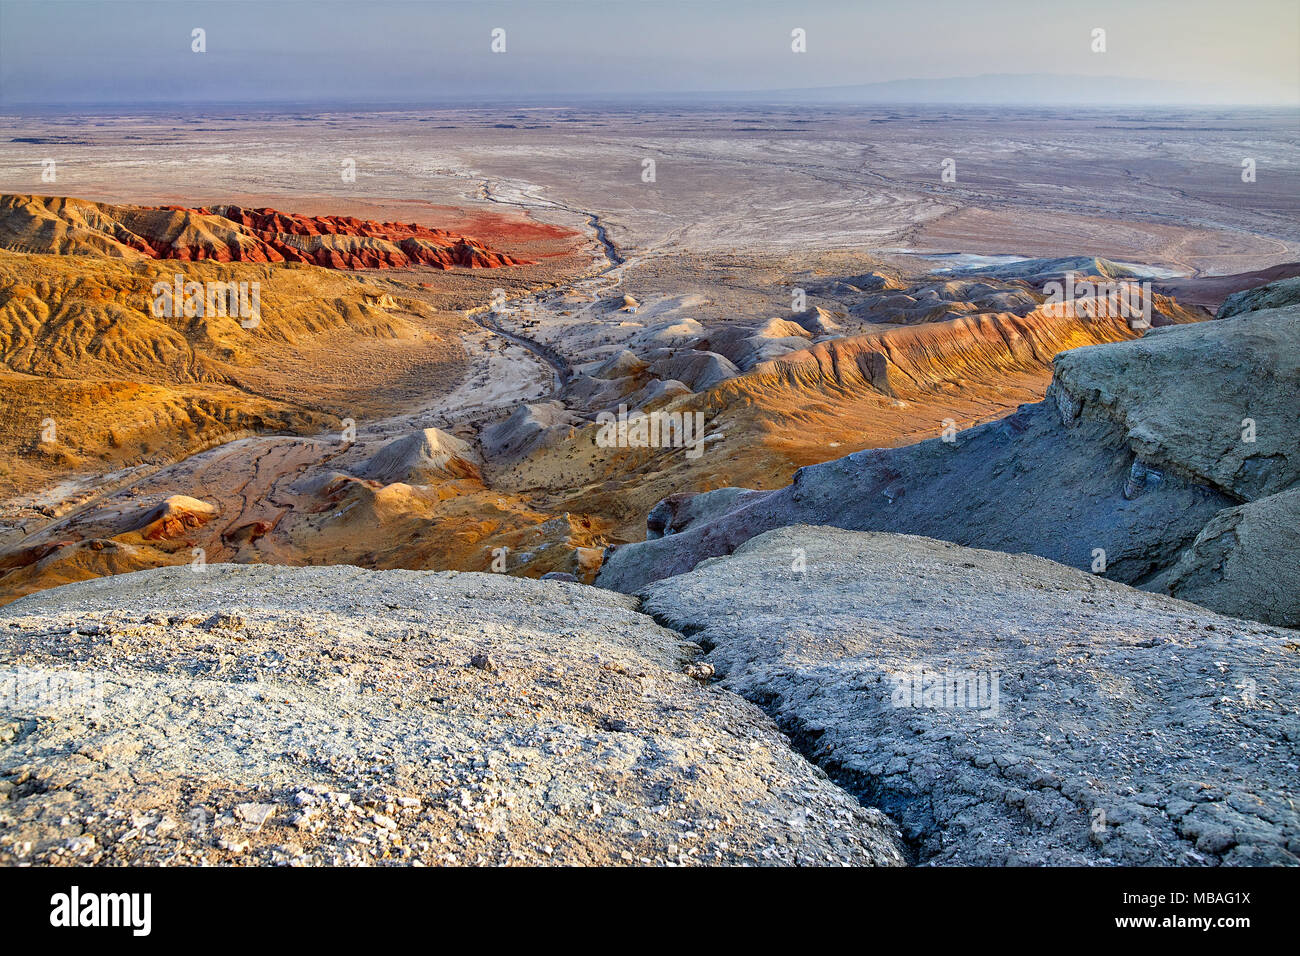 Aerial view of bizarre layered mountains in desert park Altyn Emel in Kazakhstan - Stock Image